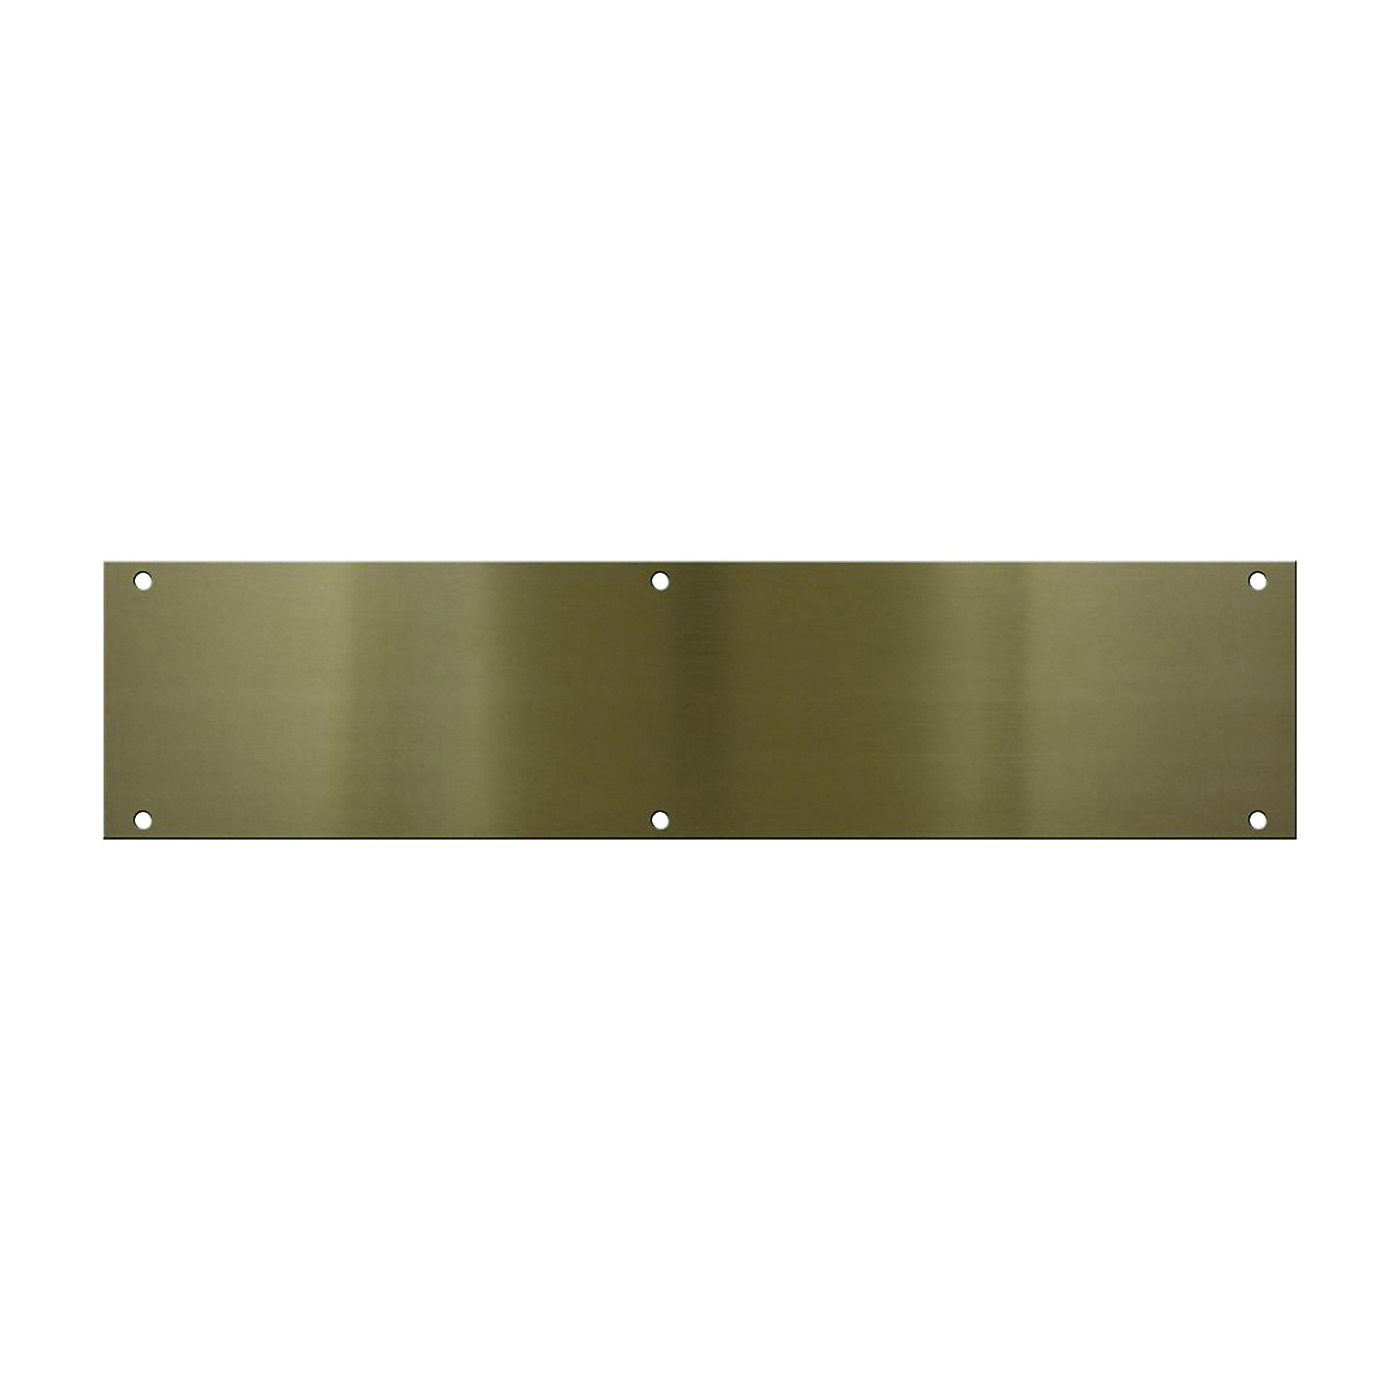 Picture of National Hardware V1981 Series N336-628 Push Plate, Aluminum, Antique Brass, 3-1/2 in L, 15 in W, Screw Mounting